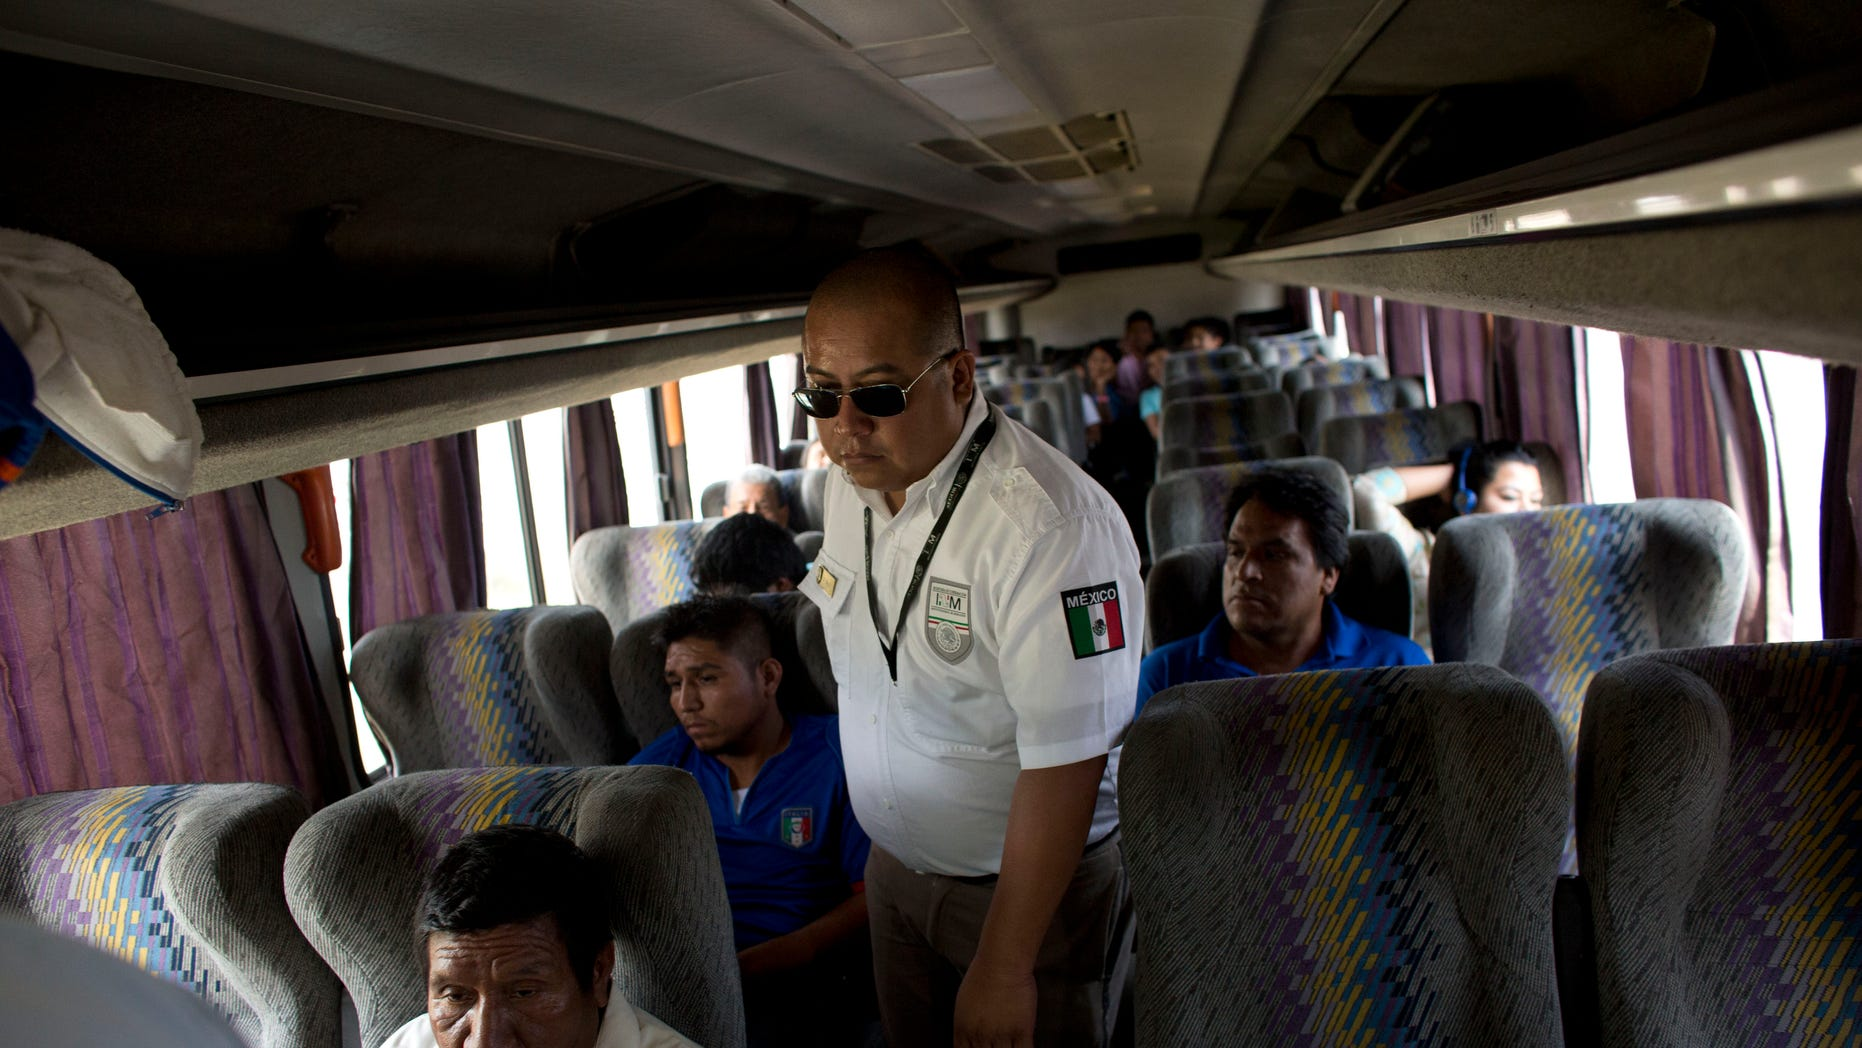 FILE - In this Aug. 27, 2014, file photo, an immigration official checks a bus for Central American migrants, at a roadblock north of Arriaga, Chiapas state, Mexico. According to data from Mexicos National Immigration Institute, Mexico has deported 79 percent more Central Americans in the first four months of 2015 than it did during the same period a year earlier. (AP Photo/Rebecca Blackwell, File)